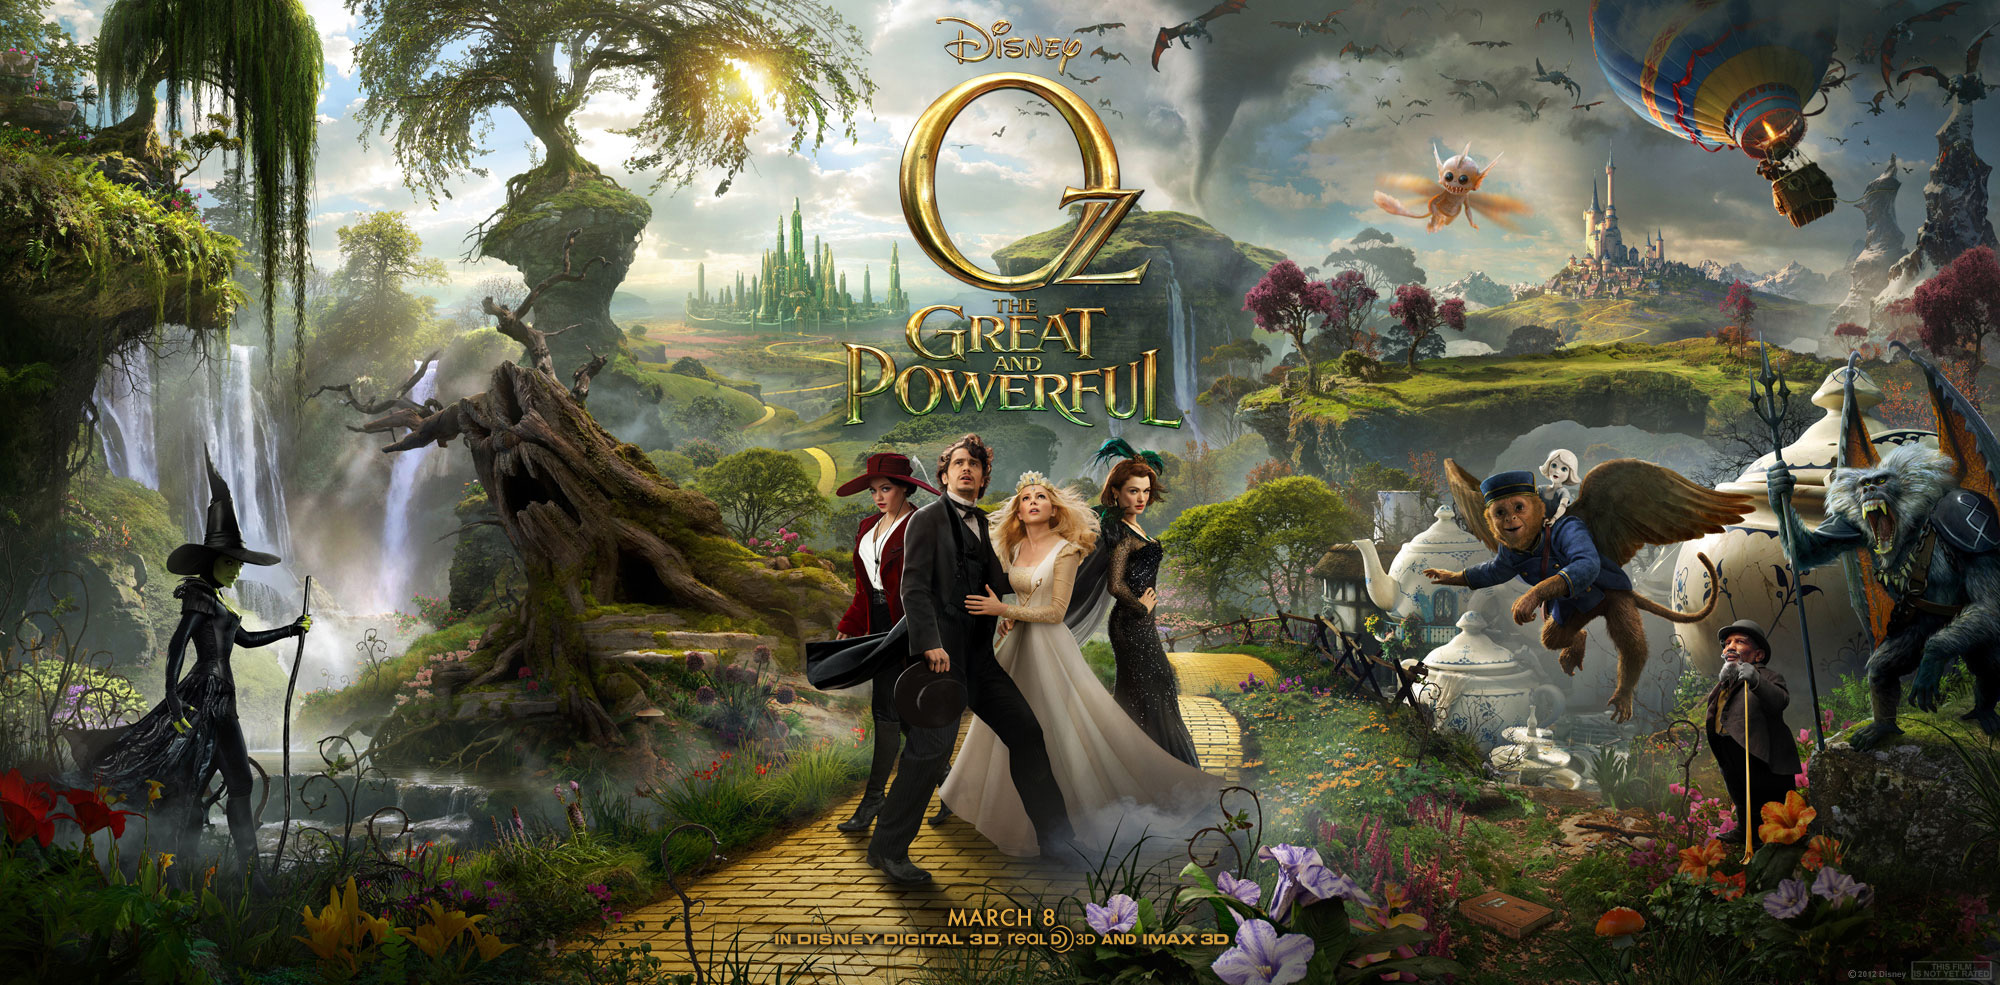 Oz The Great And Powerful Poster Hd Wallpapers.